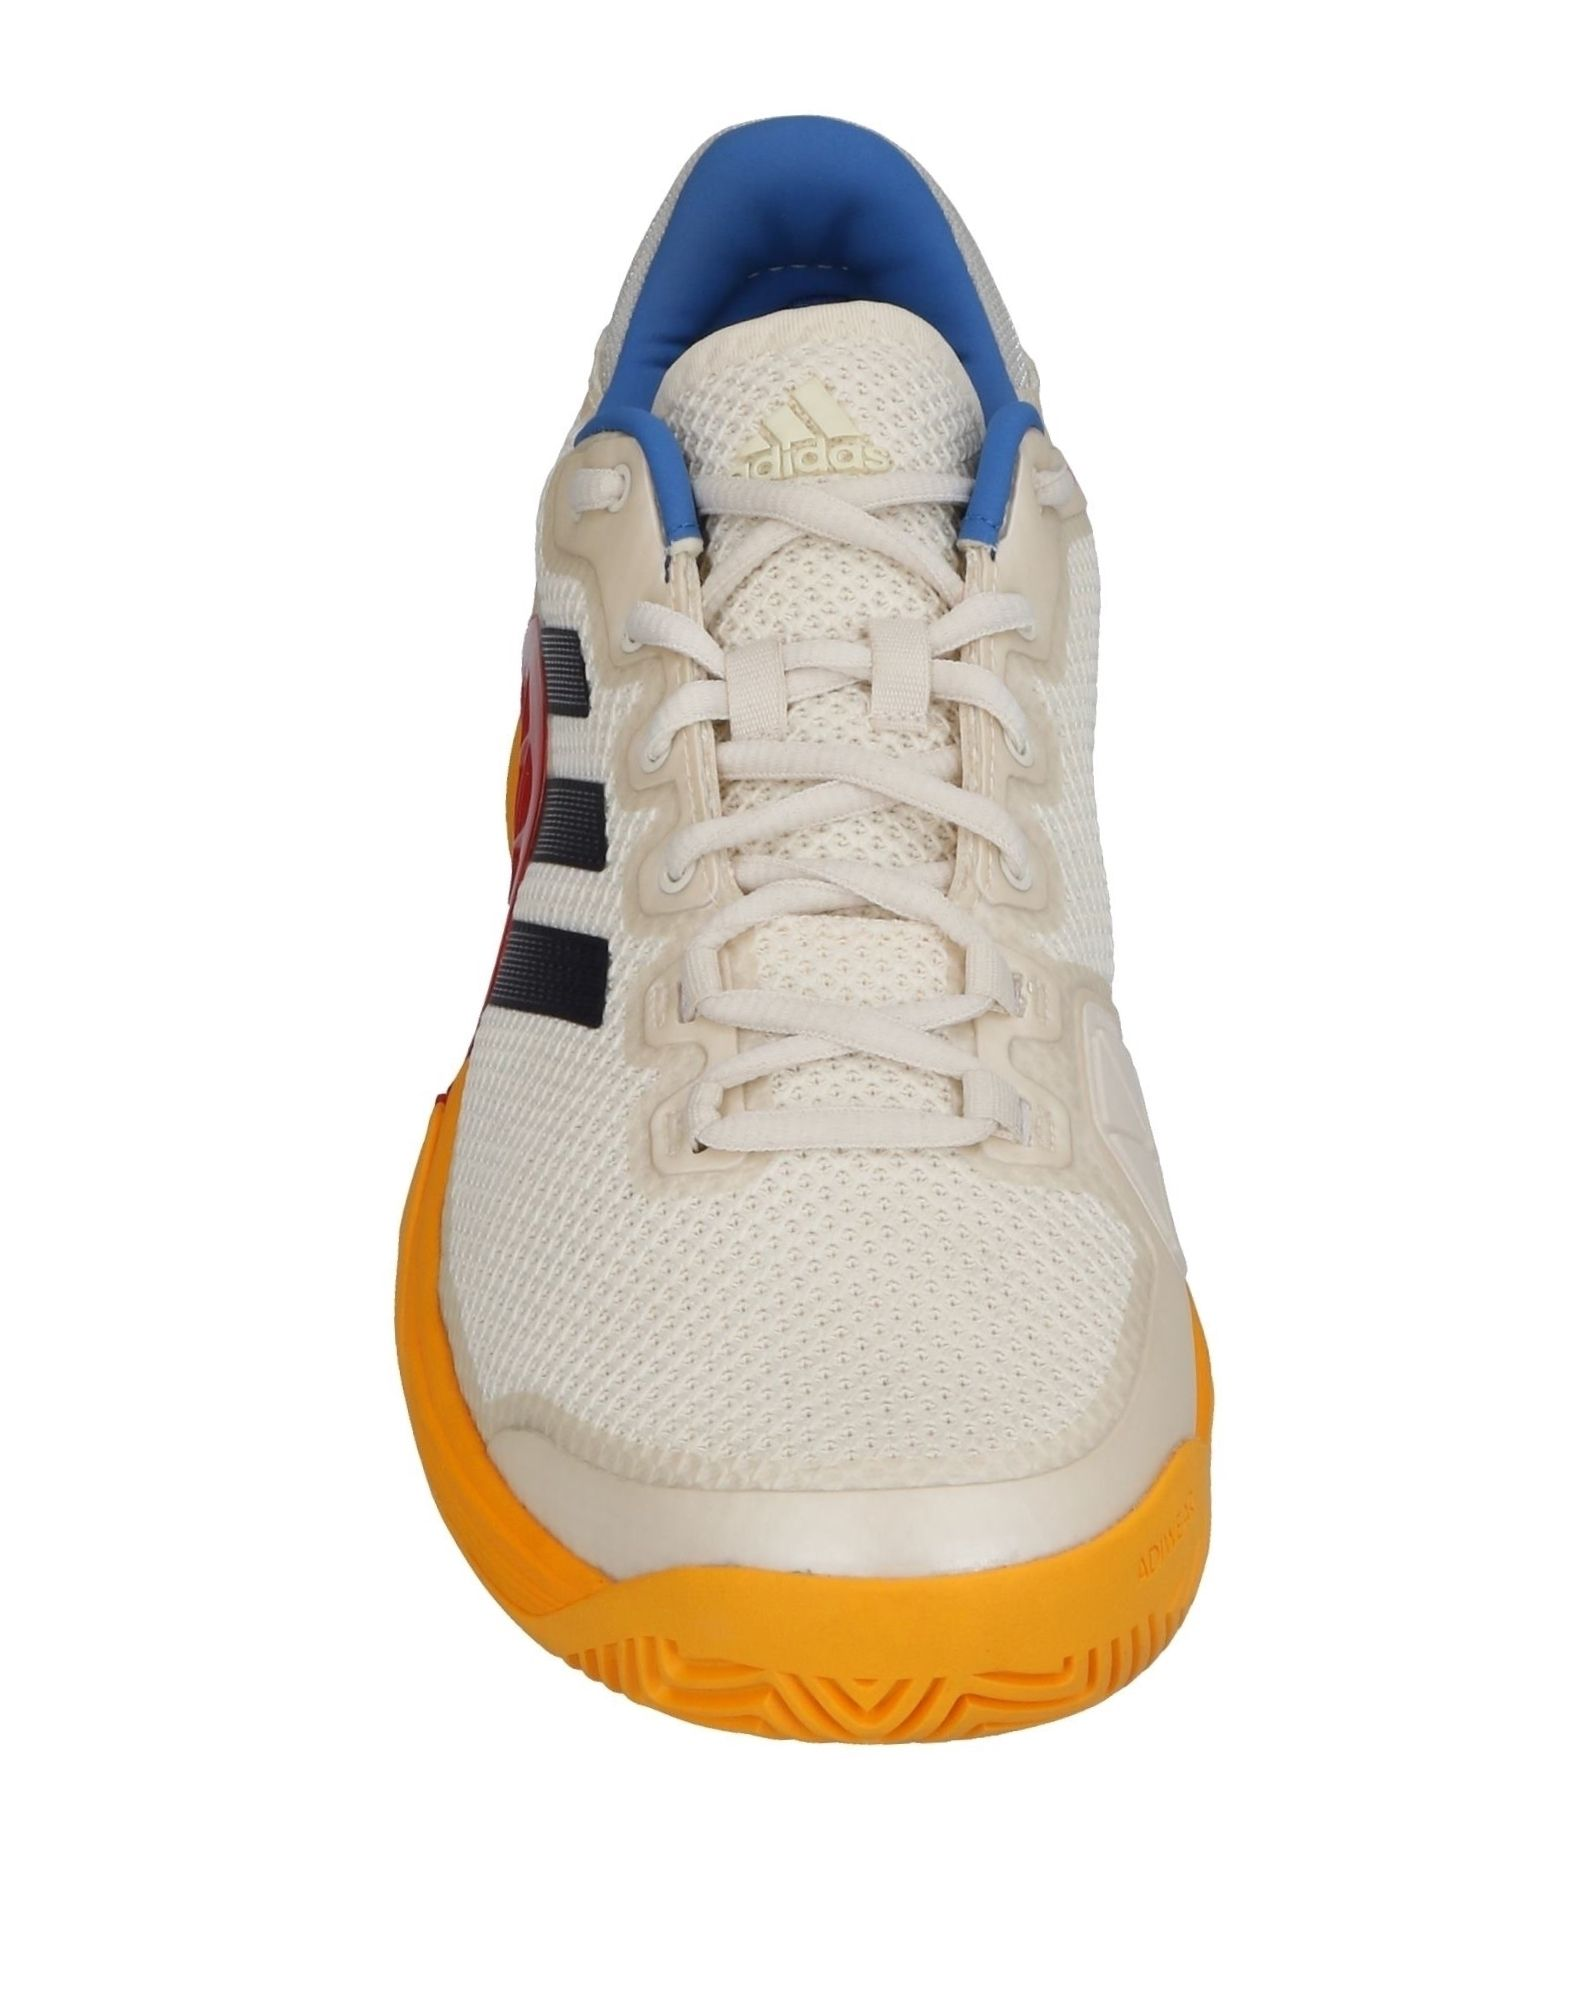 Adidas Originals Sneakers - Men on Adidas Originals Sneakers online on Men  Canada - 11454746UU 9a65ac